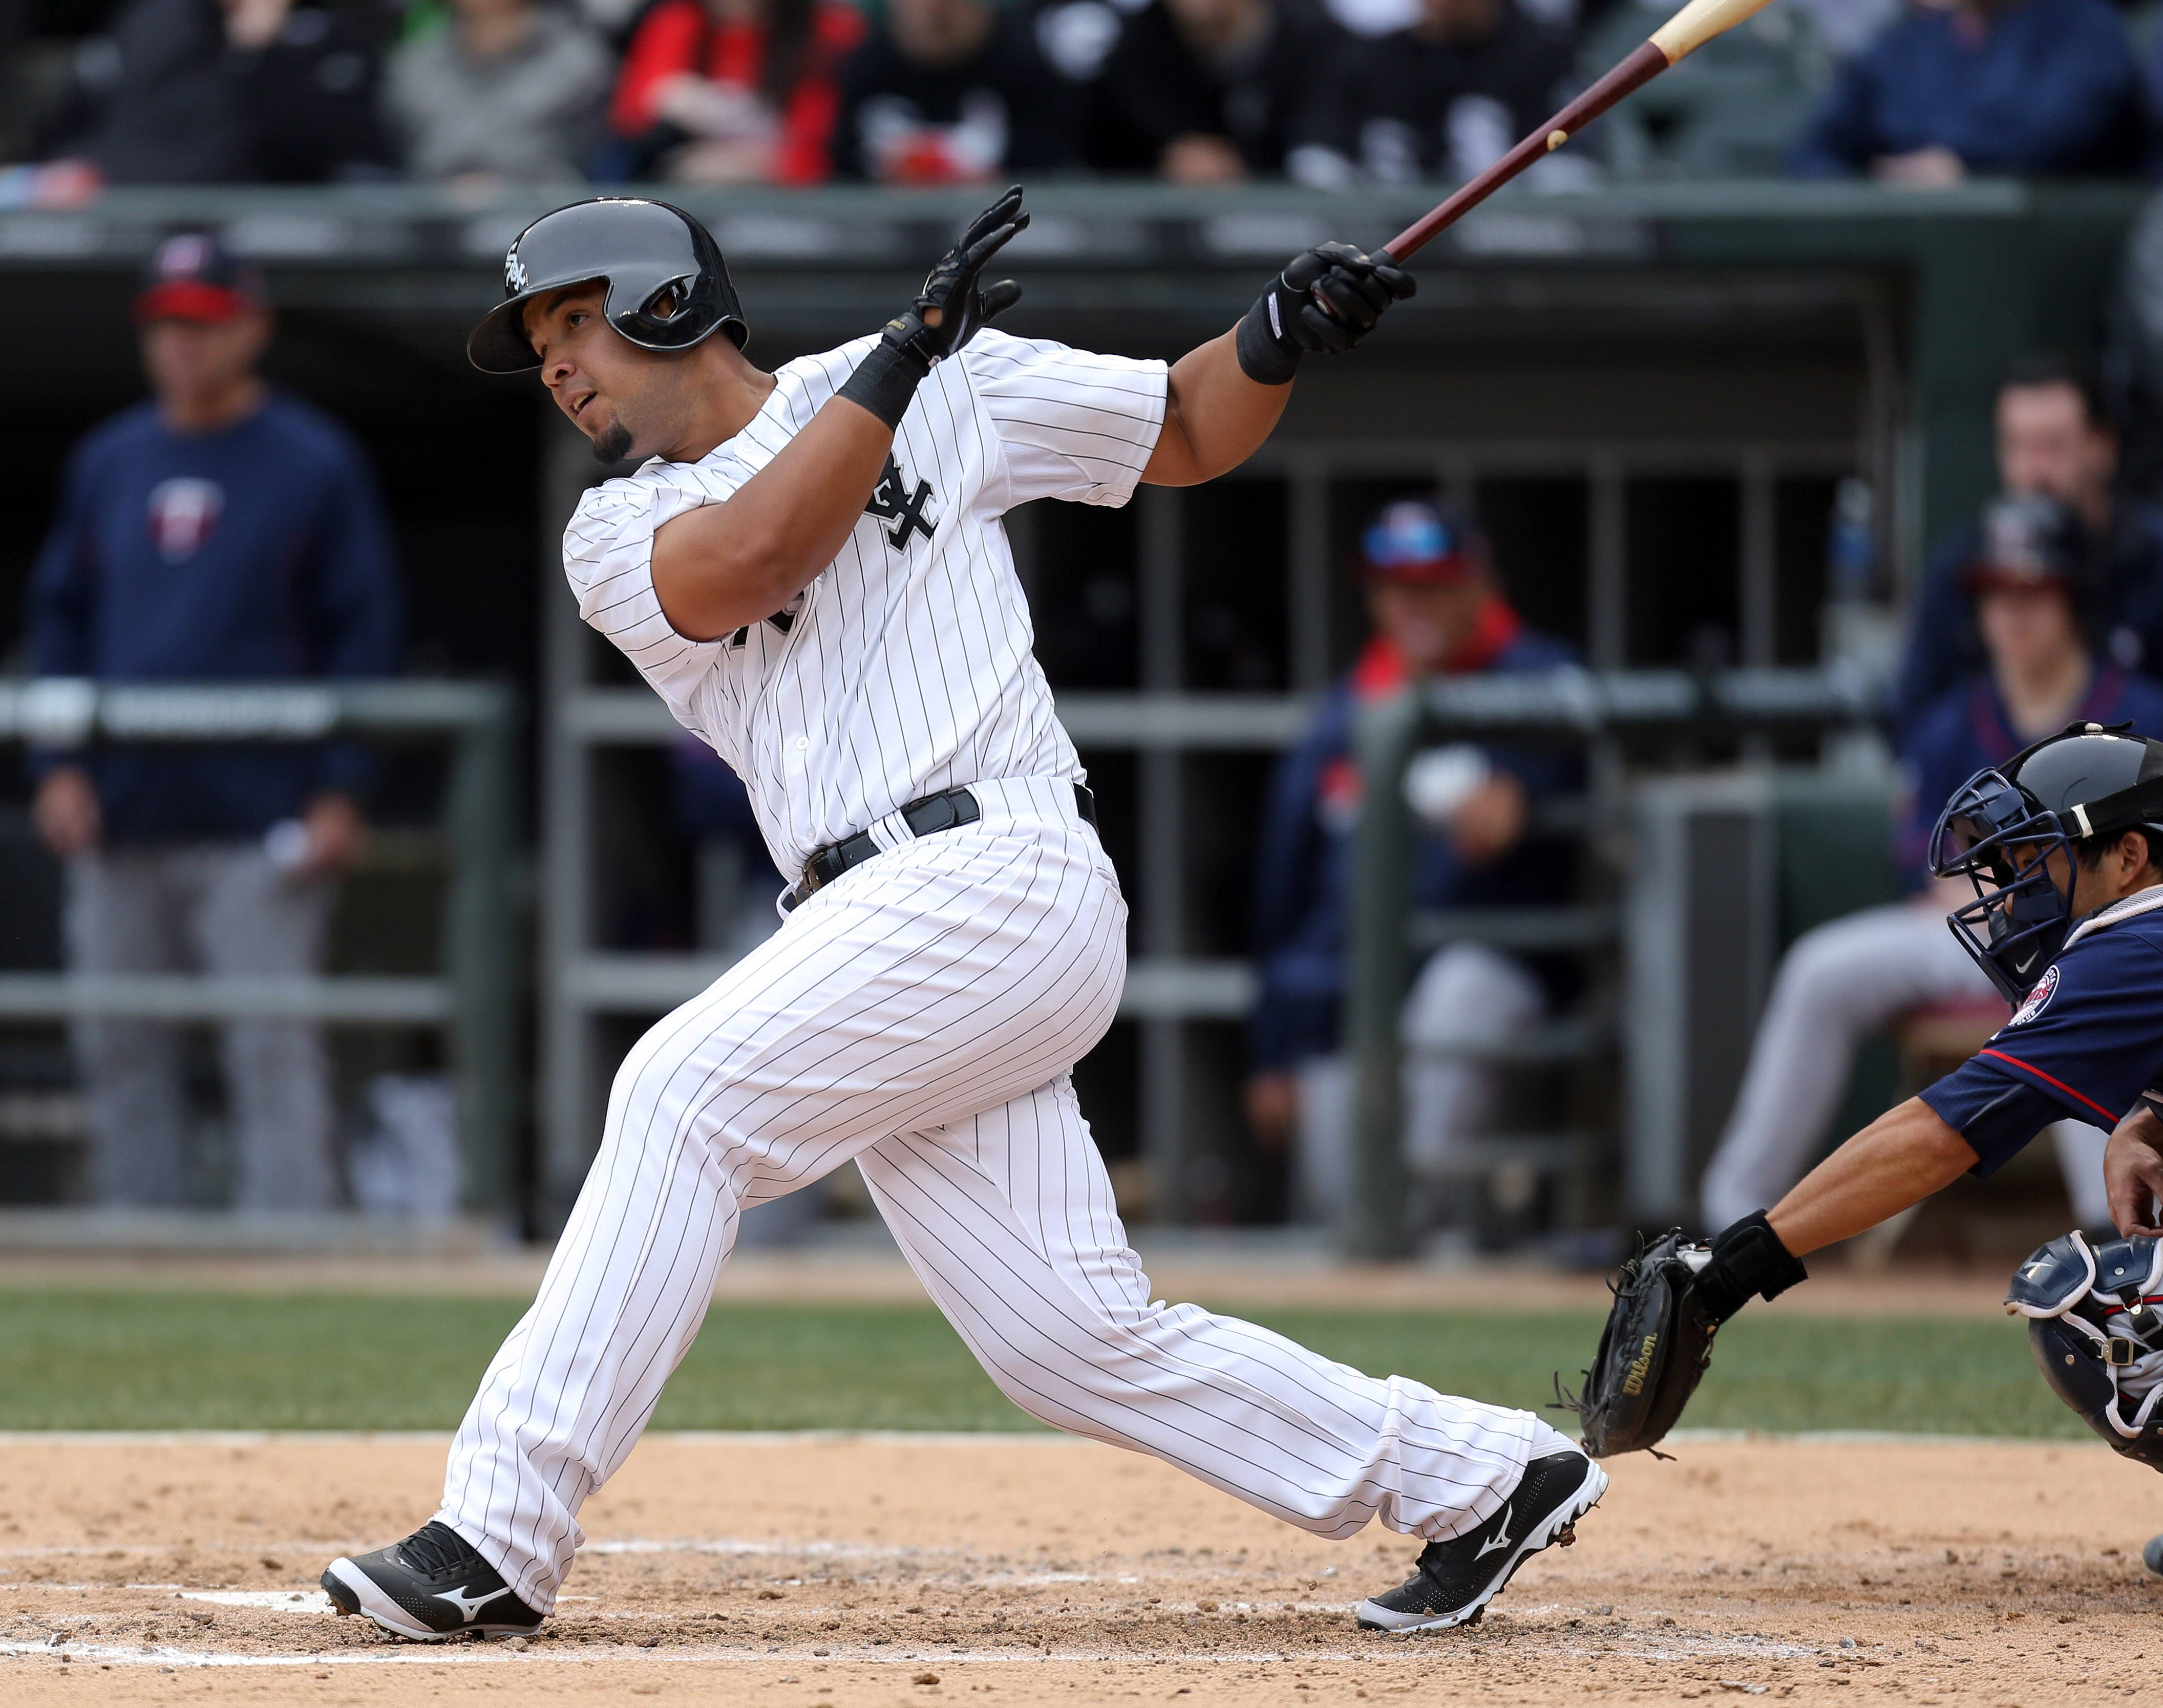 White Sox first baseman Jose Abreu connects during the White Sox home opener against the Minnesota Twins Monday at U.S. Cellular Field.